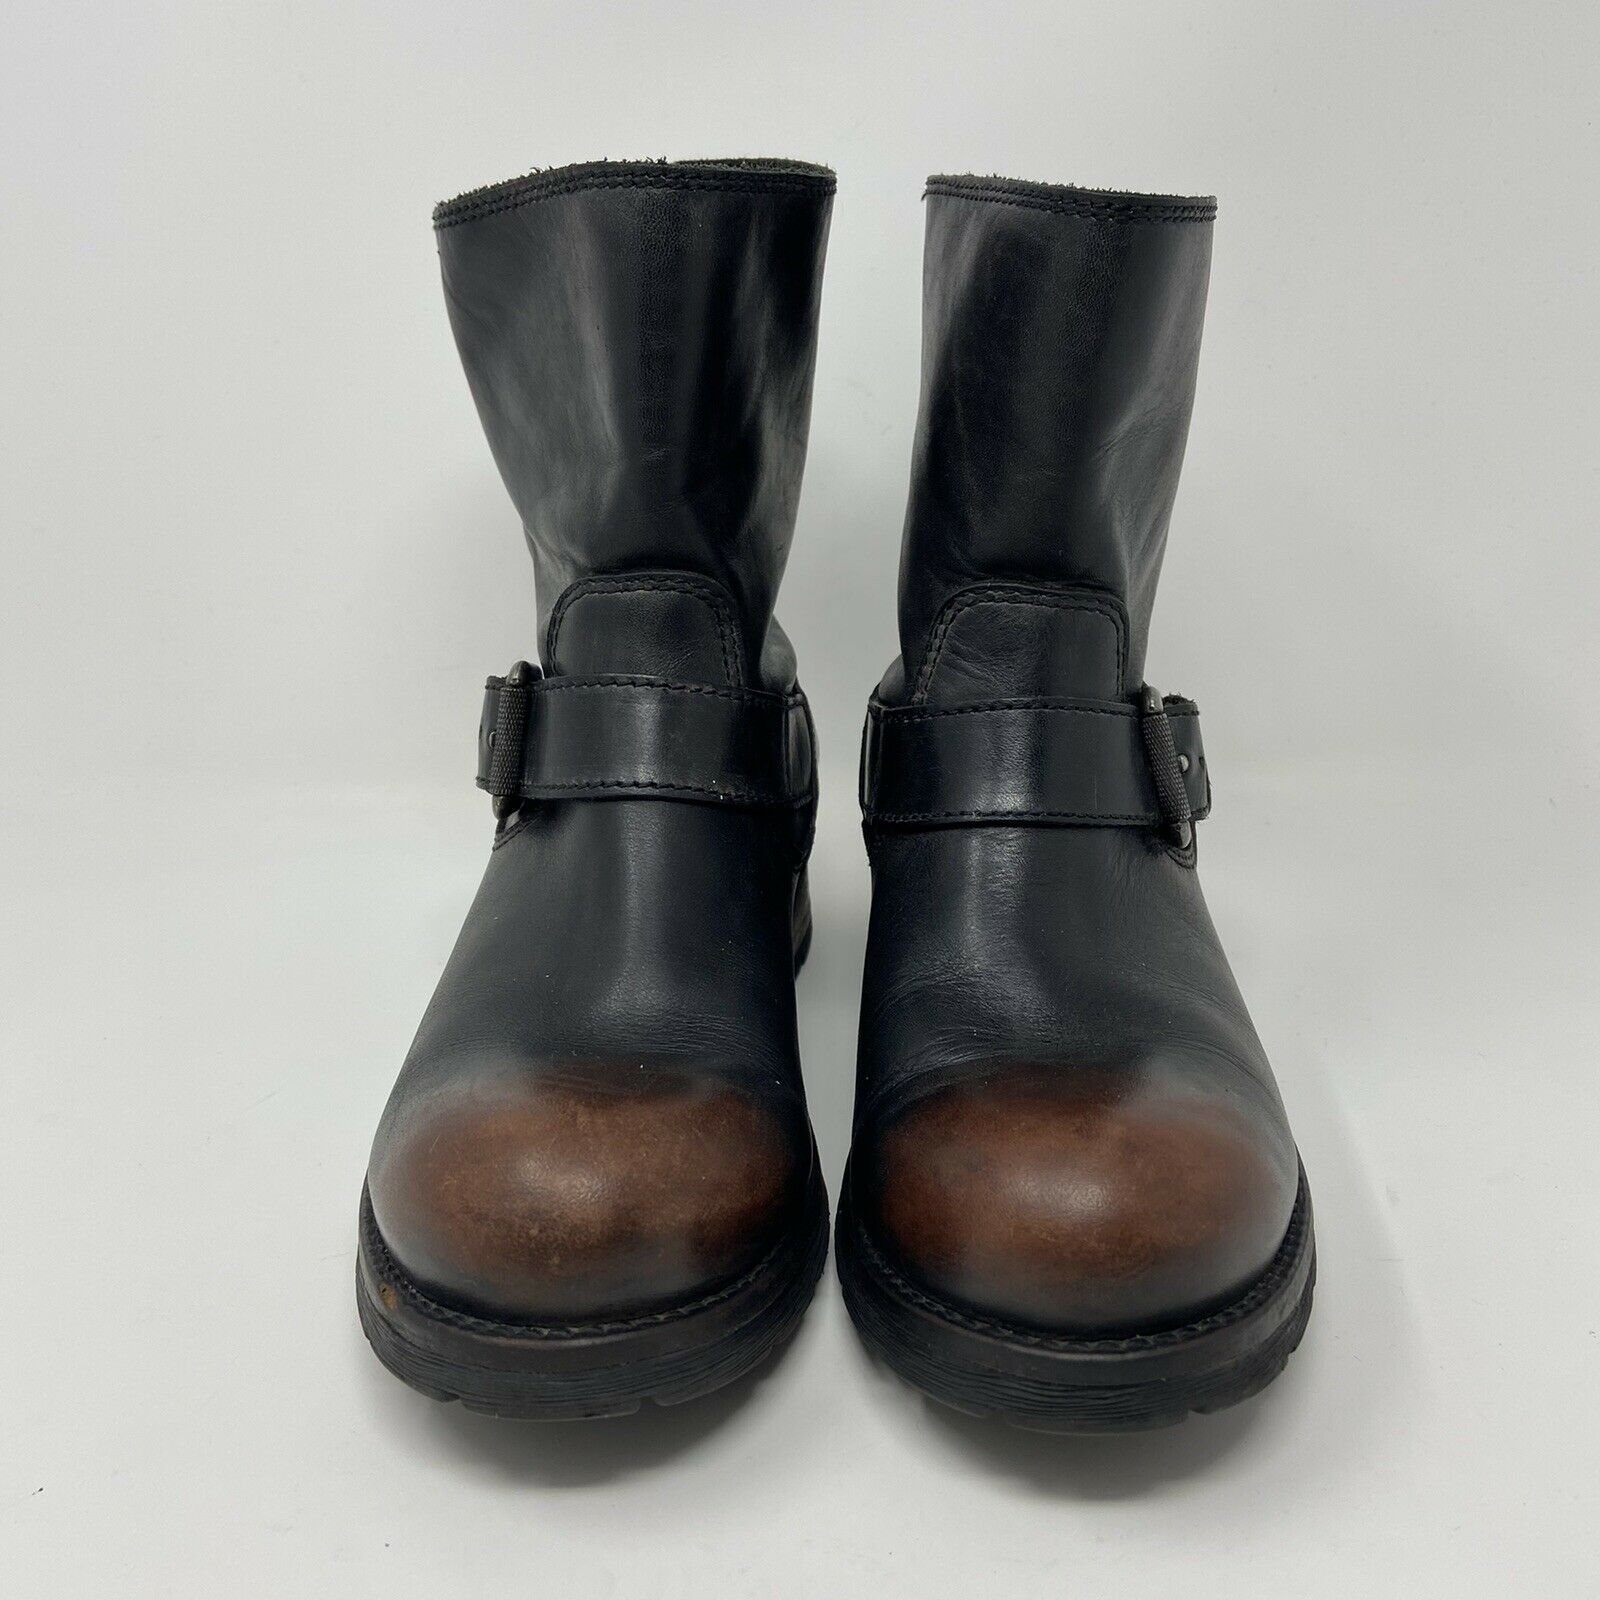 Diesel Womens Leather Moto Ankle Boots Distressed Black Brown Buckle Sz 37 US 7